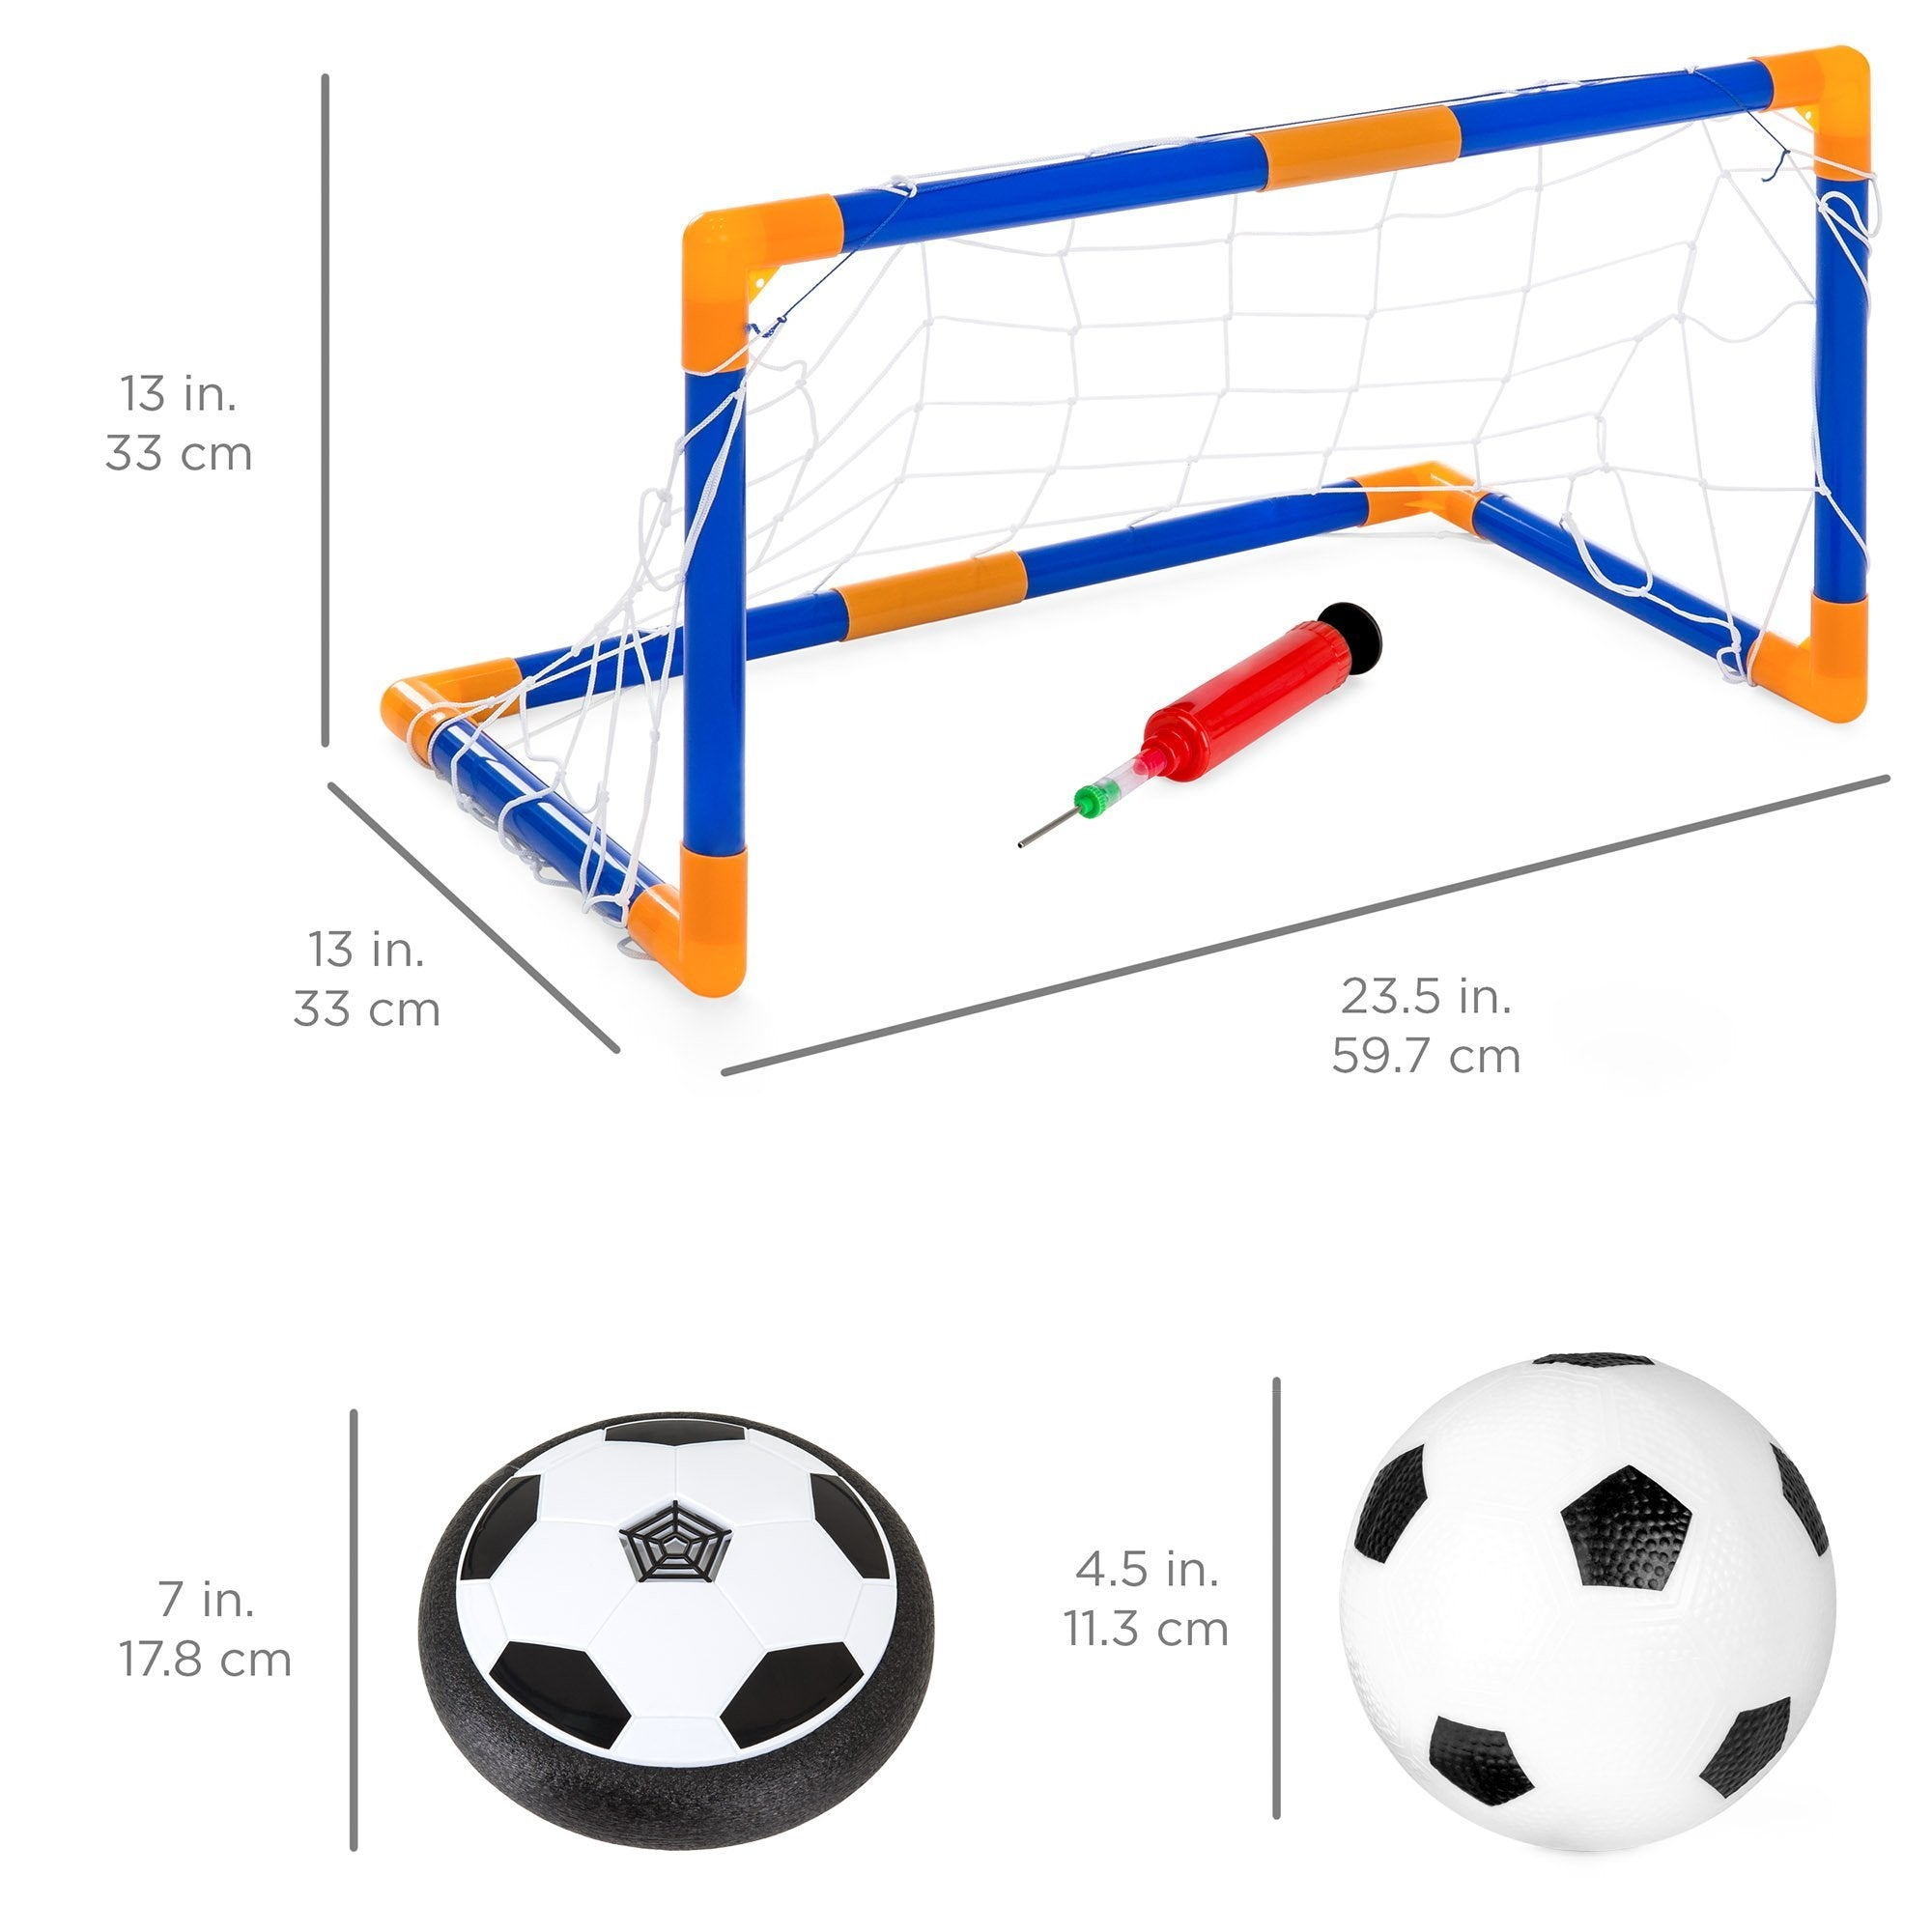 Light Up Hover Disk Soccer Set w/ Air Power Soccer, Pump, Ball, Goal